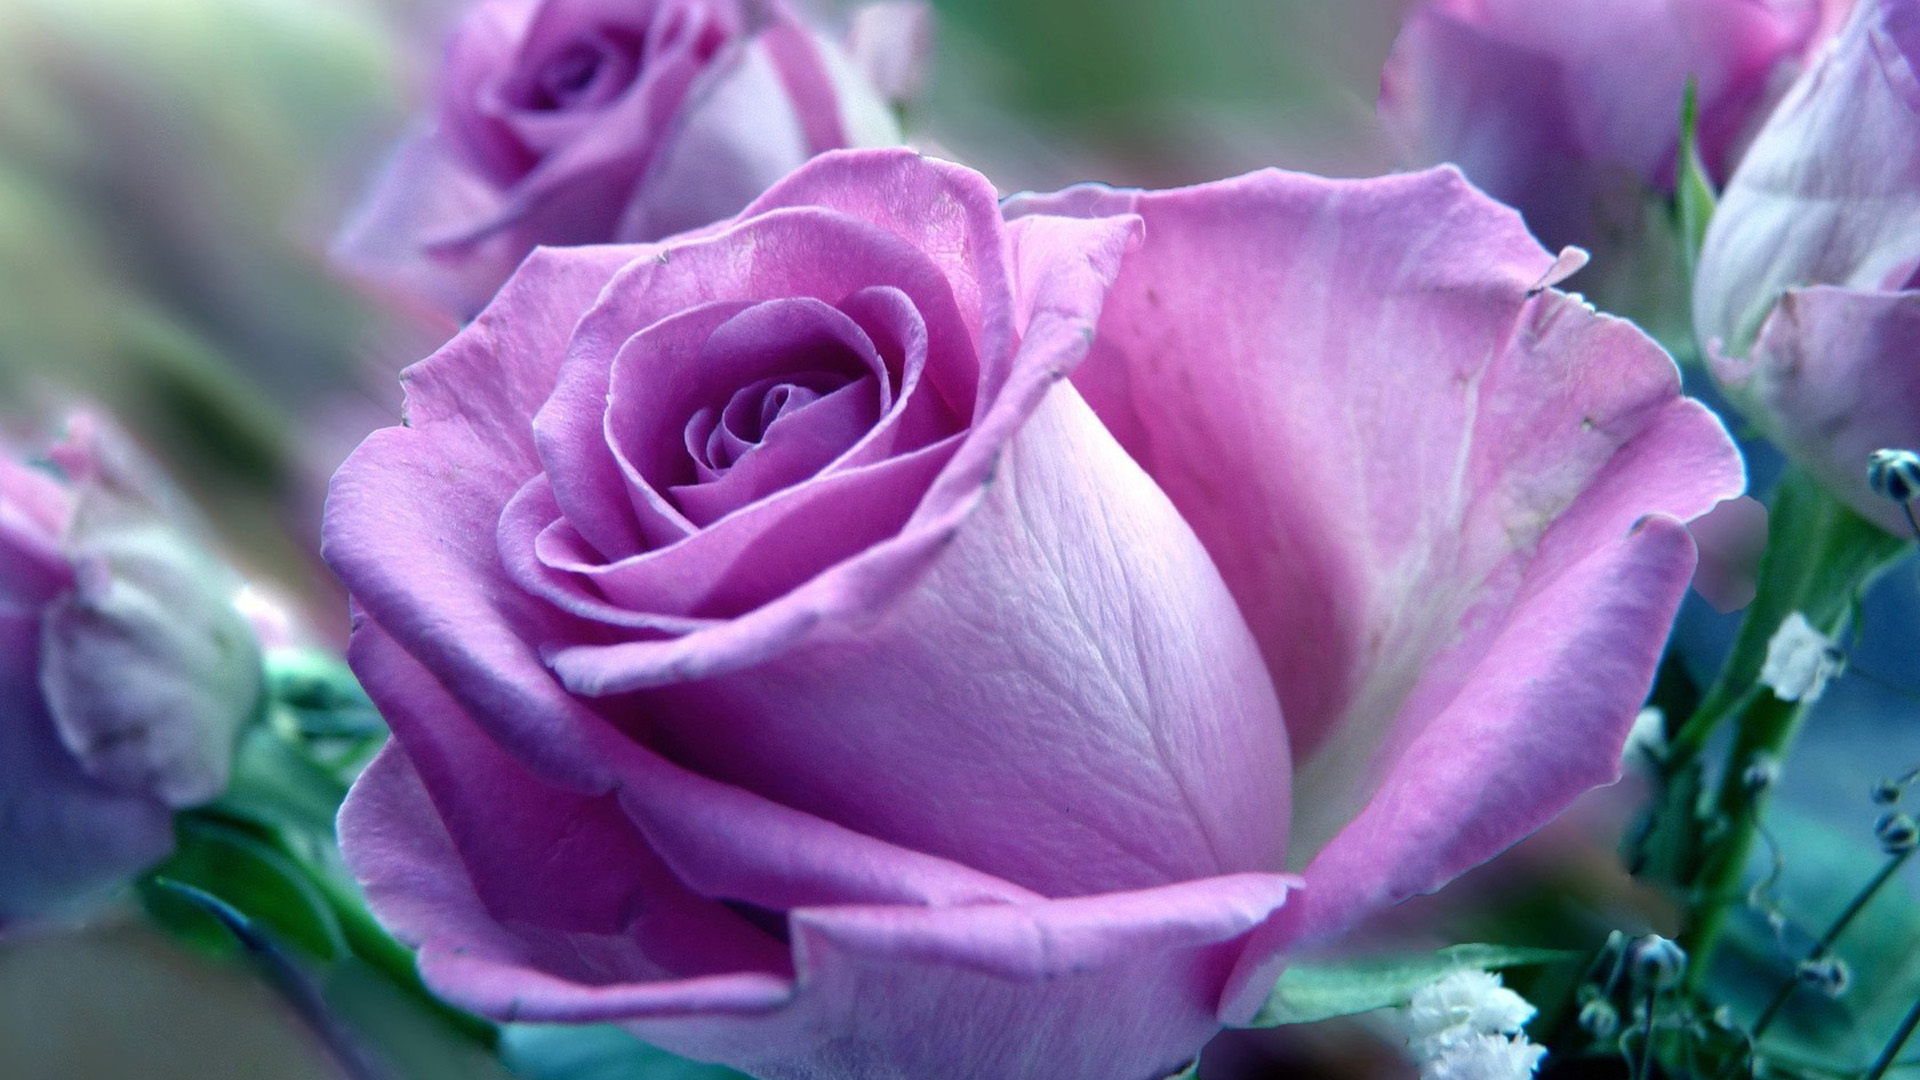 wallpapers of purple roses - photo #38